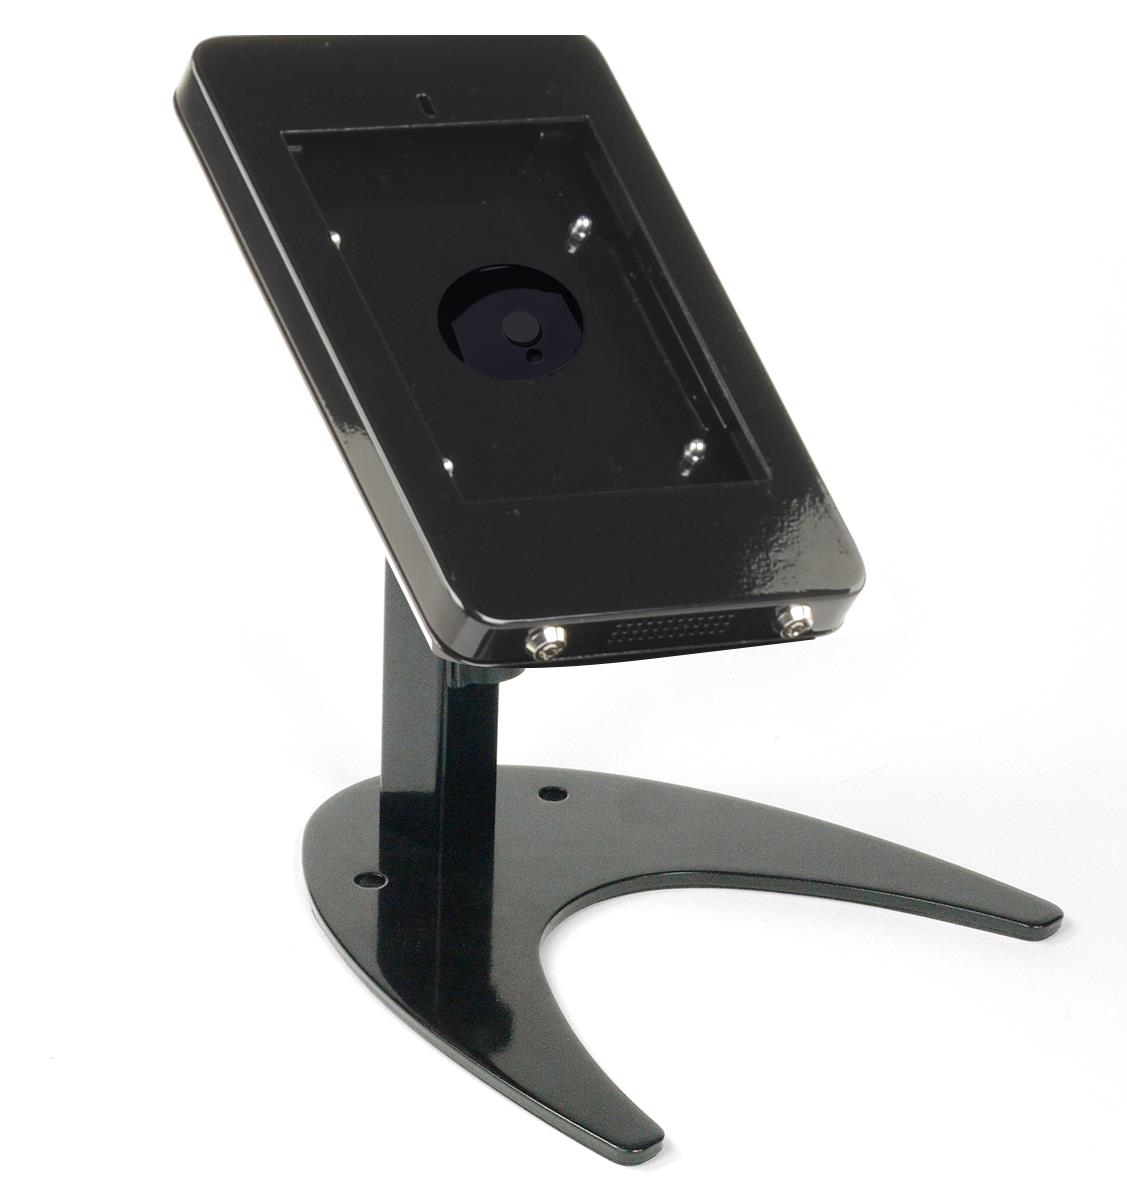 Ipad Mini Desktop Stand For Commercial Locations